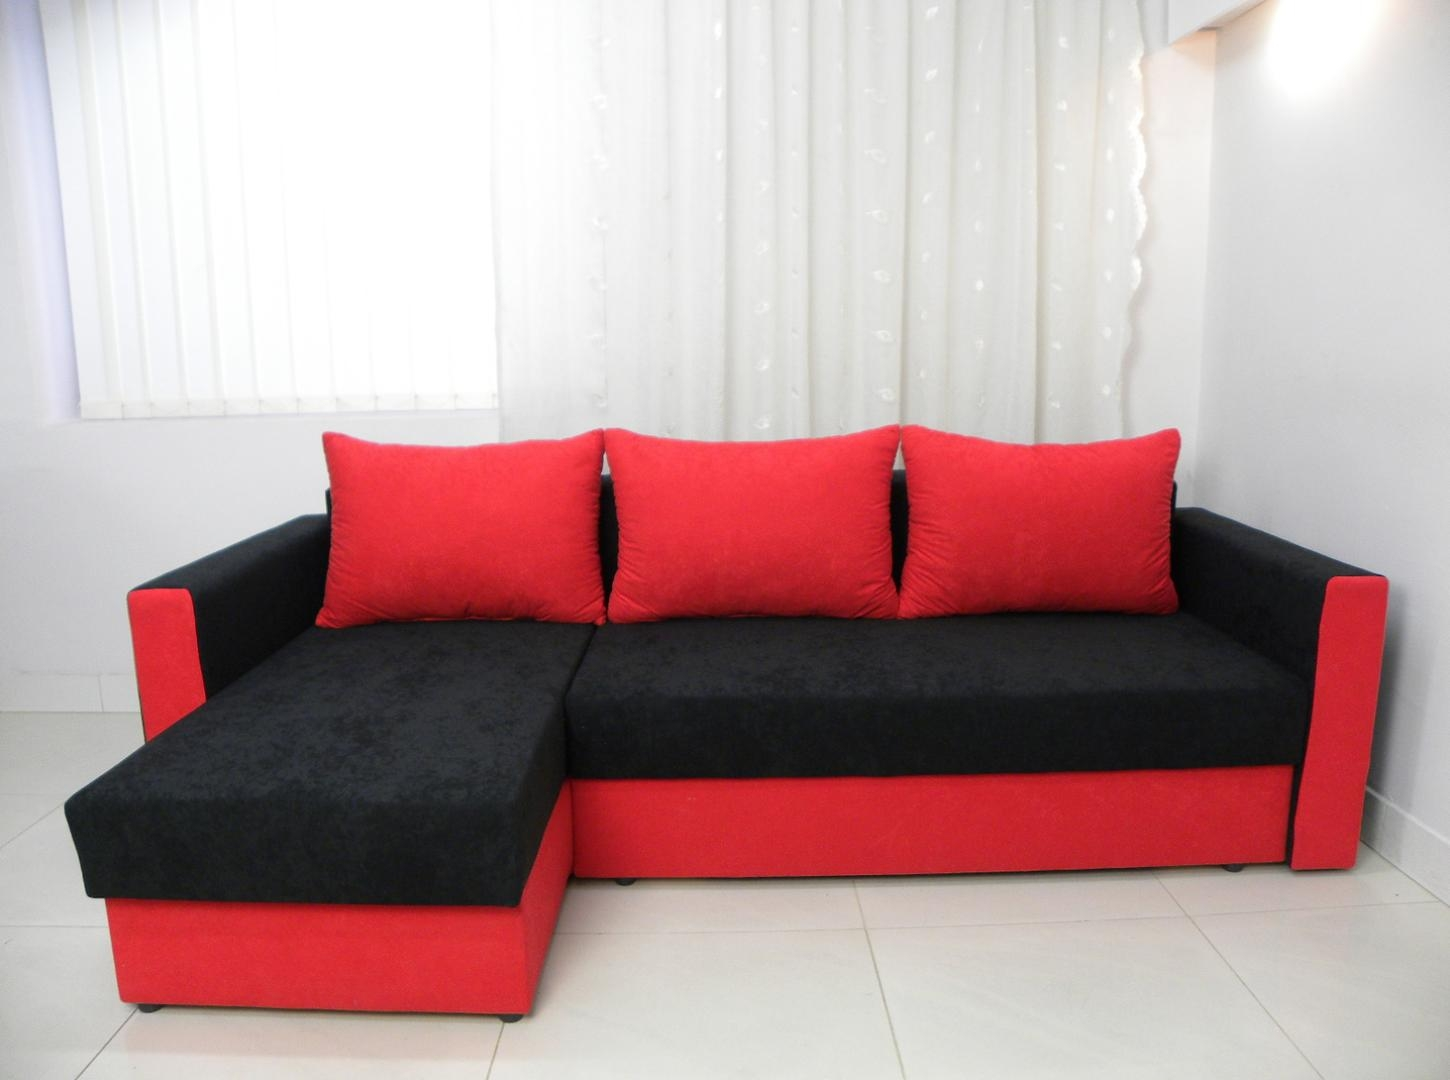 Sofa Corner Bed Red Redditch South Wales Leather Cover Birmingham For Sofa Red And Black (Image 17 of 20)